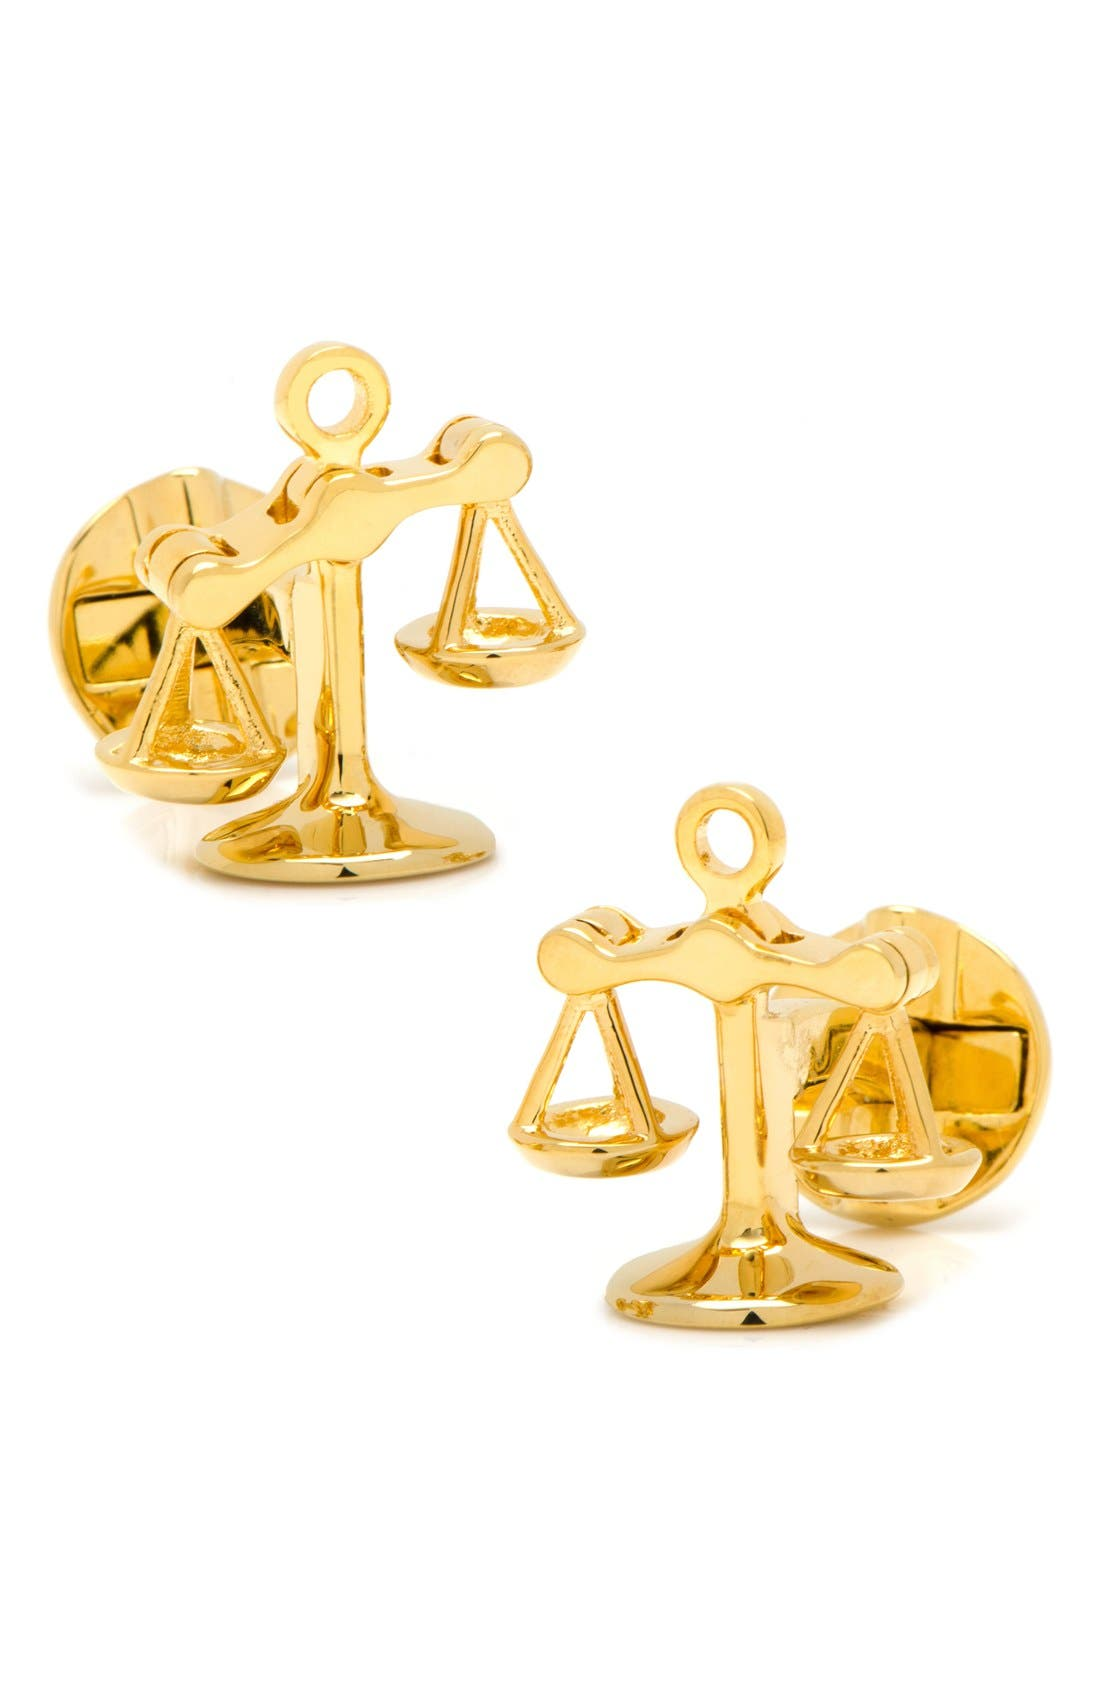 Main Image - Ox and Bull Trading Co. 'Scales of Justice' Cuff Links